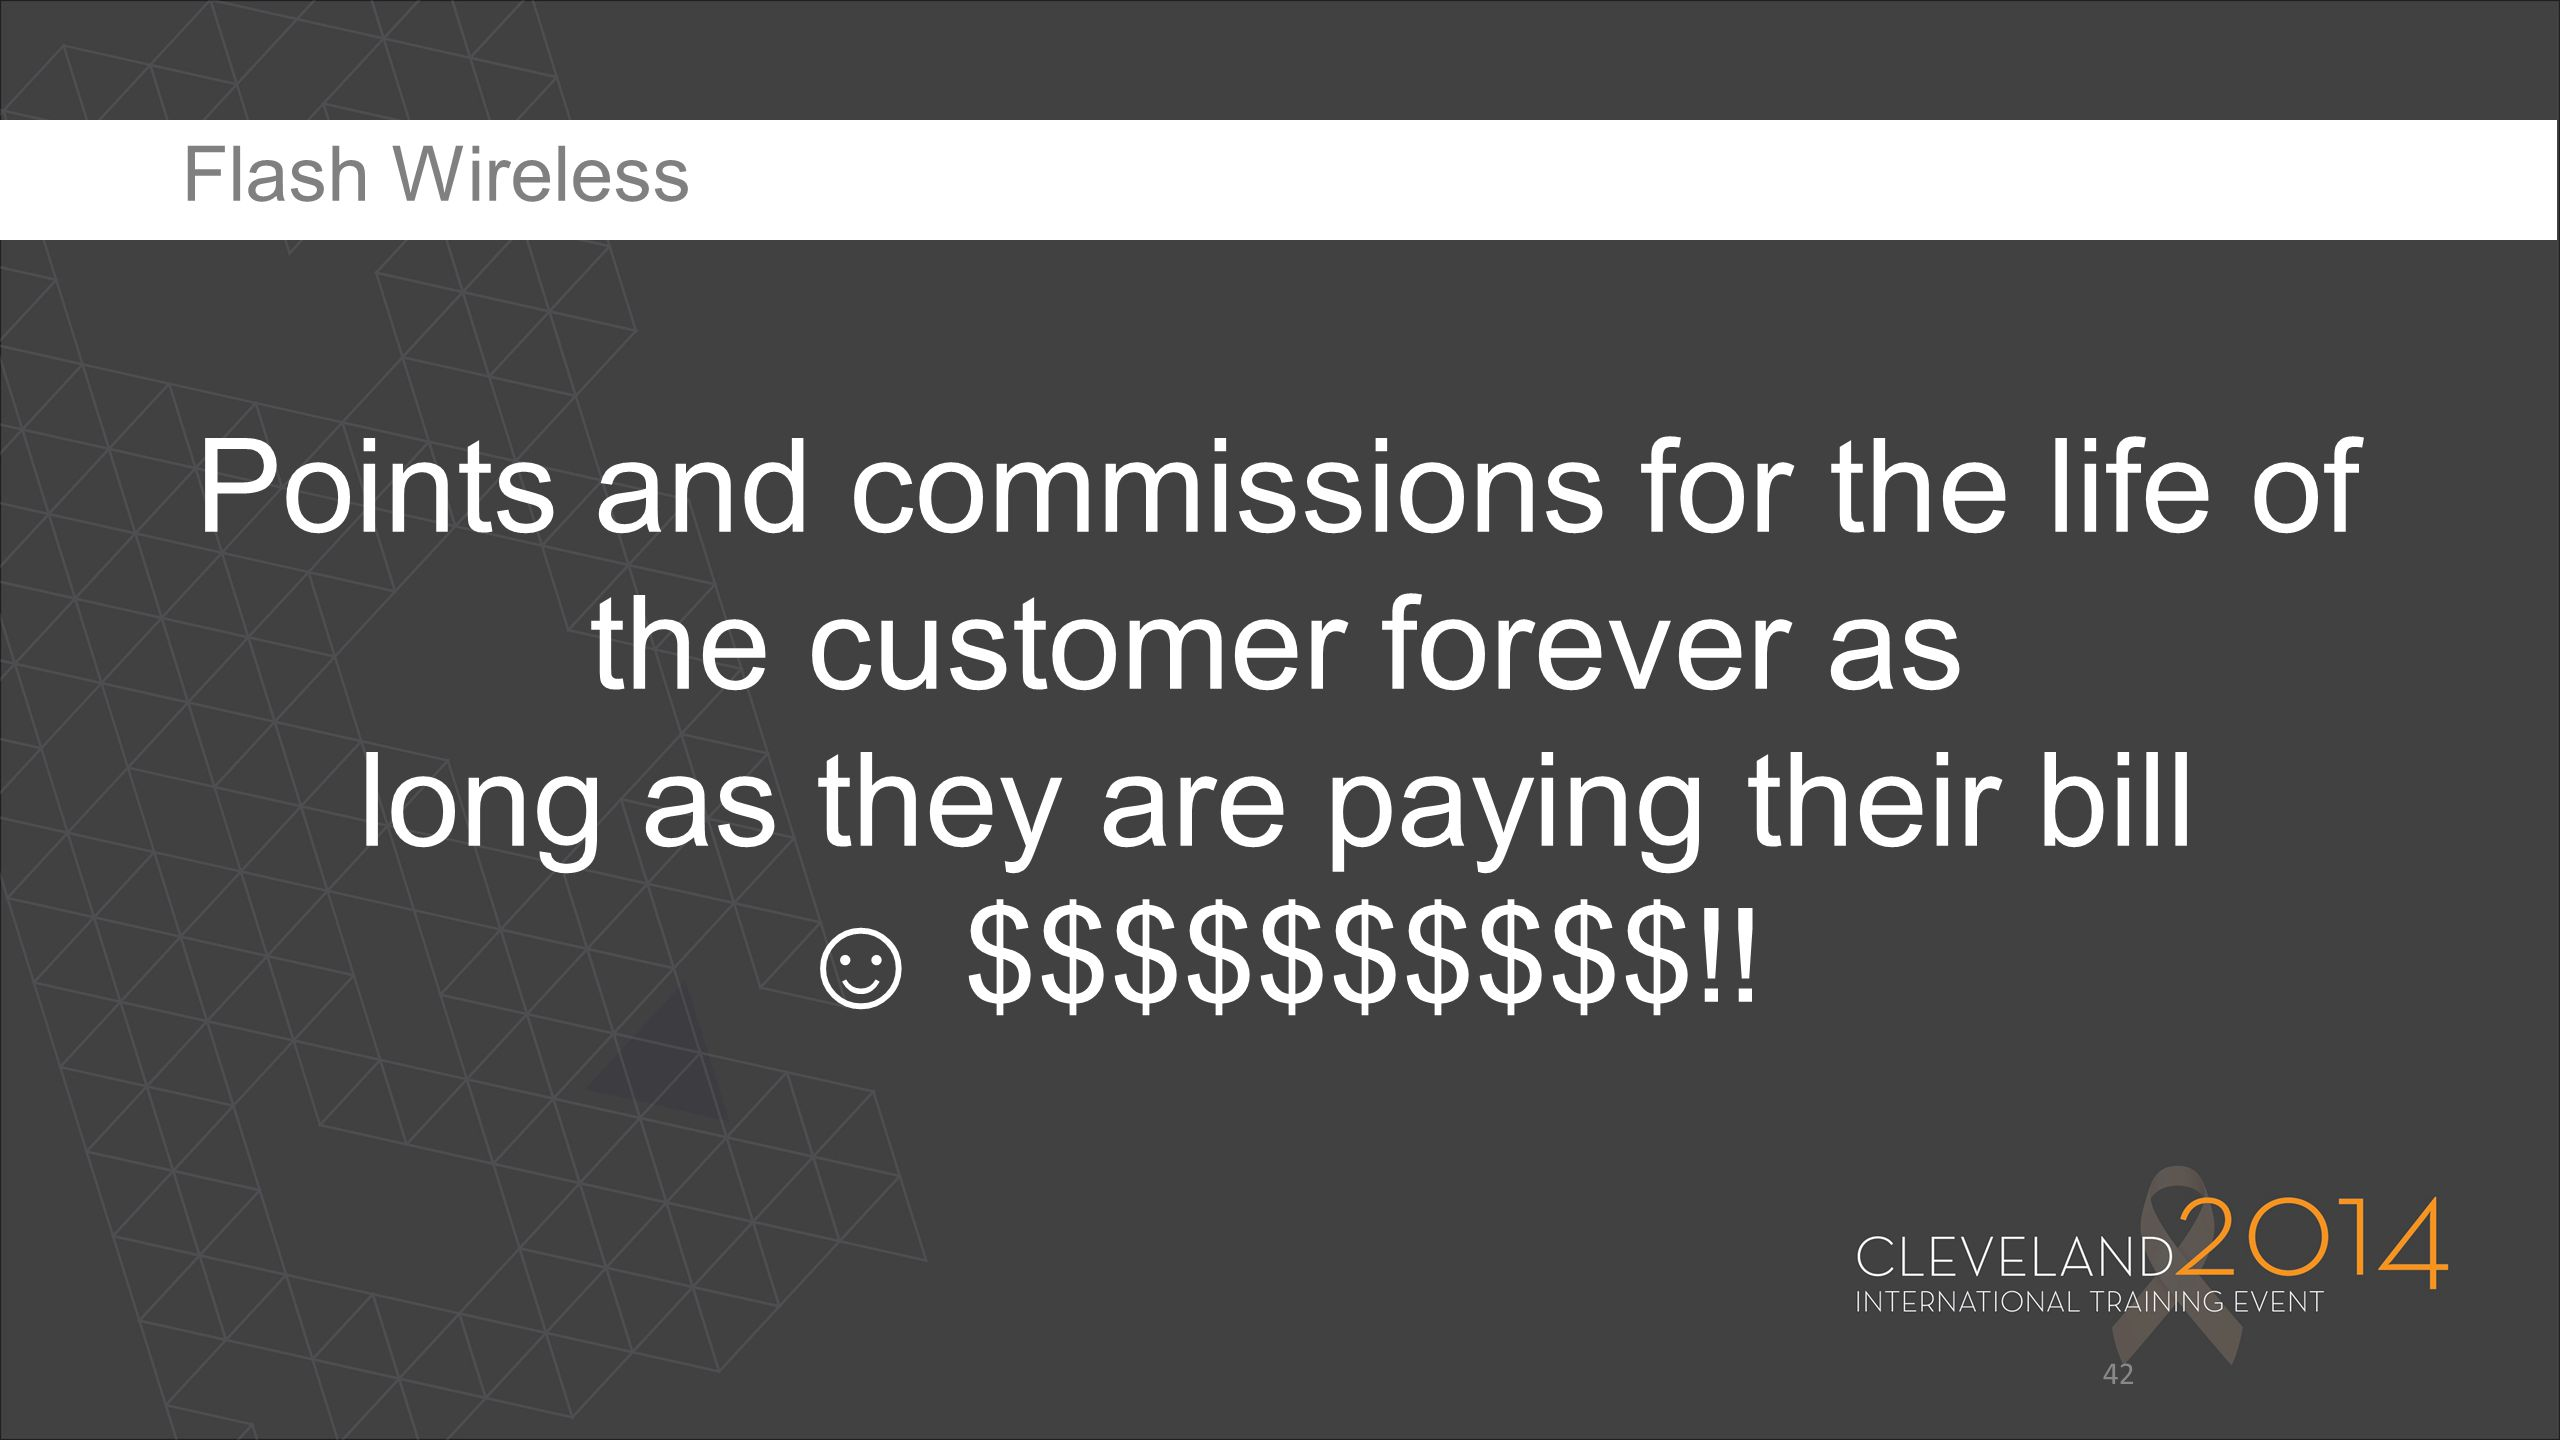 42 Points and commissions for the life of the customer forever as long as they are paying their bill ☺ $$$$$$$$$$!! Flash Wireless